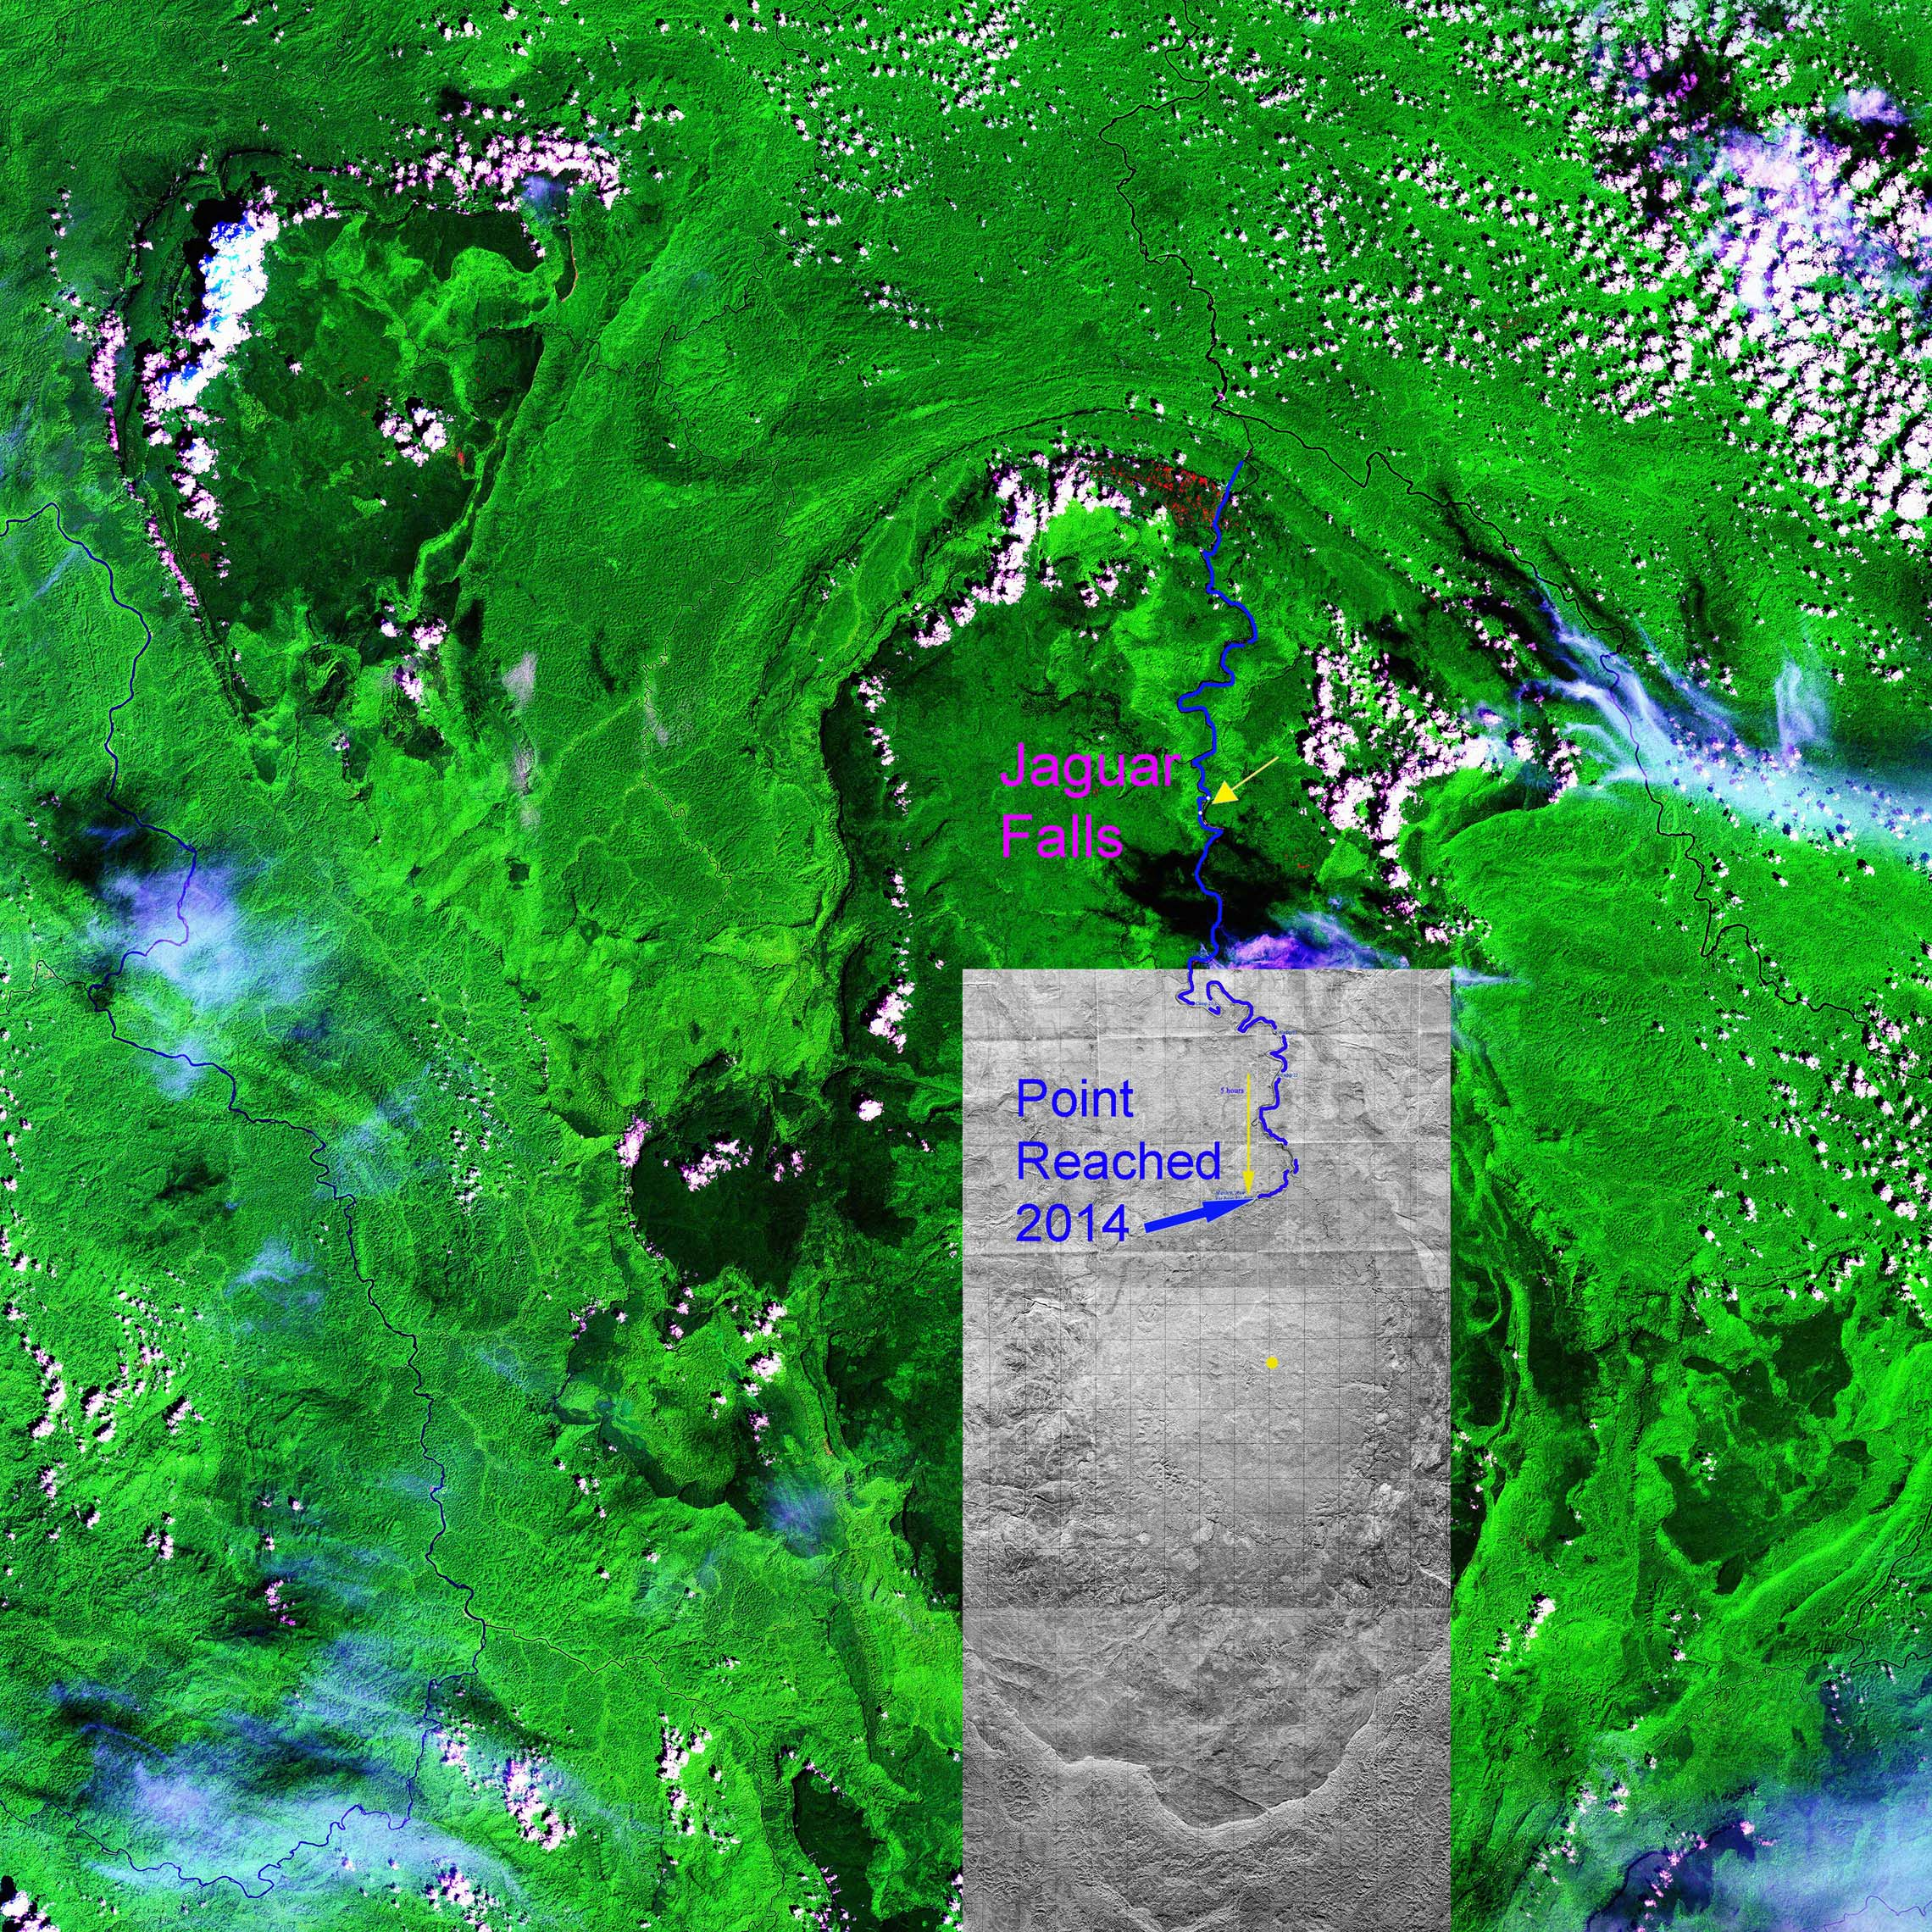 A Composite of a Satellite Image and Venezuelan Topographic Maps